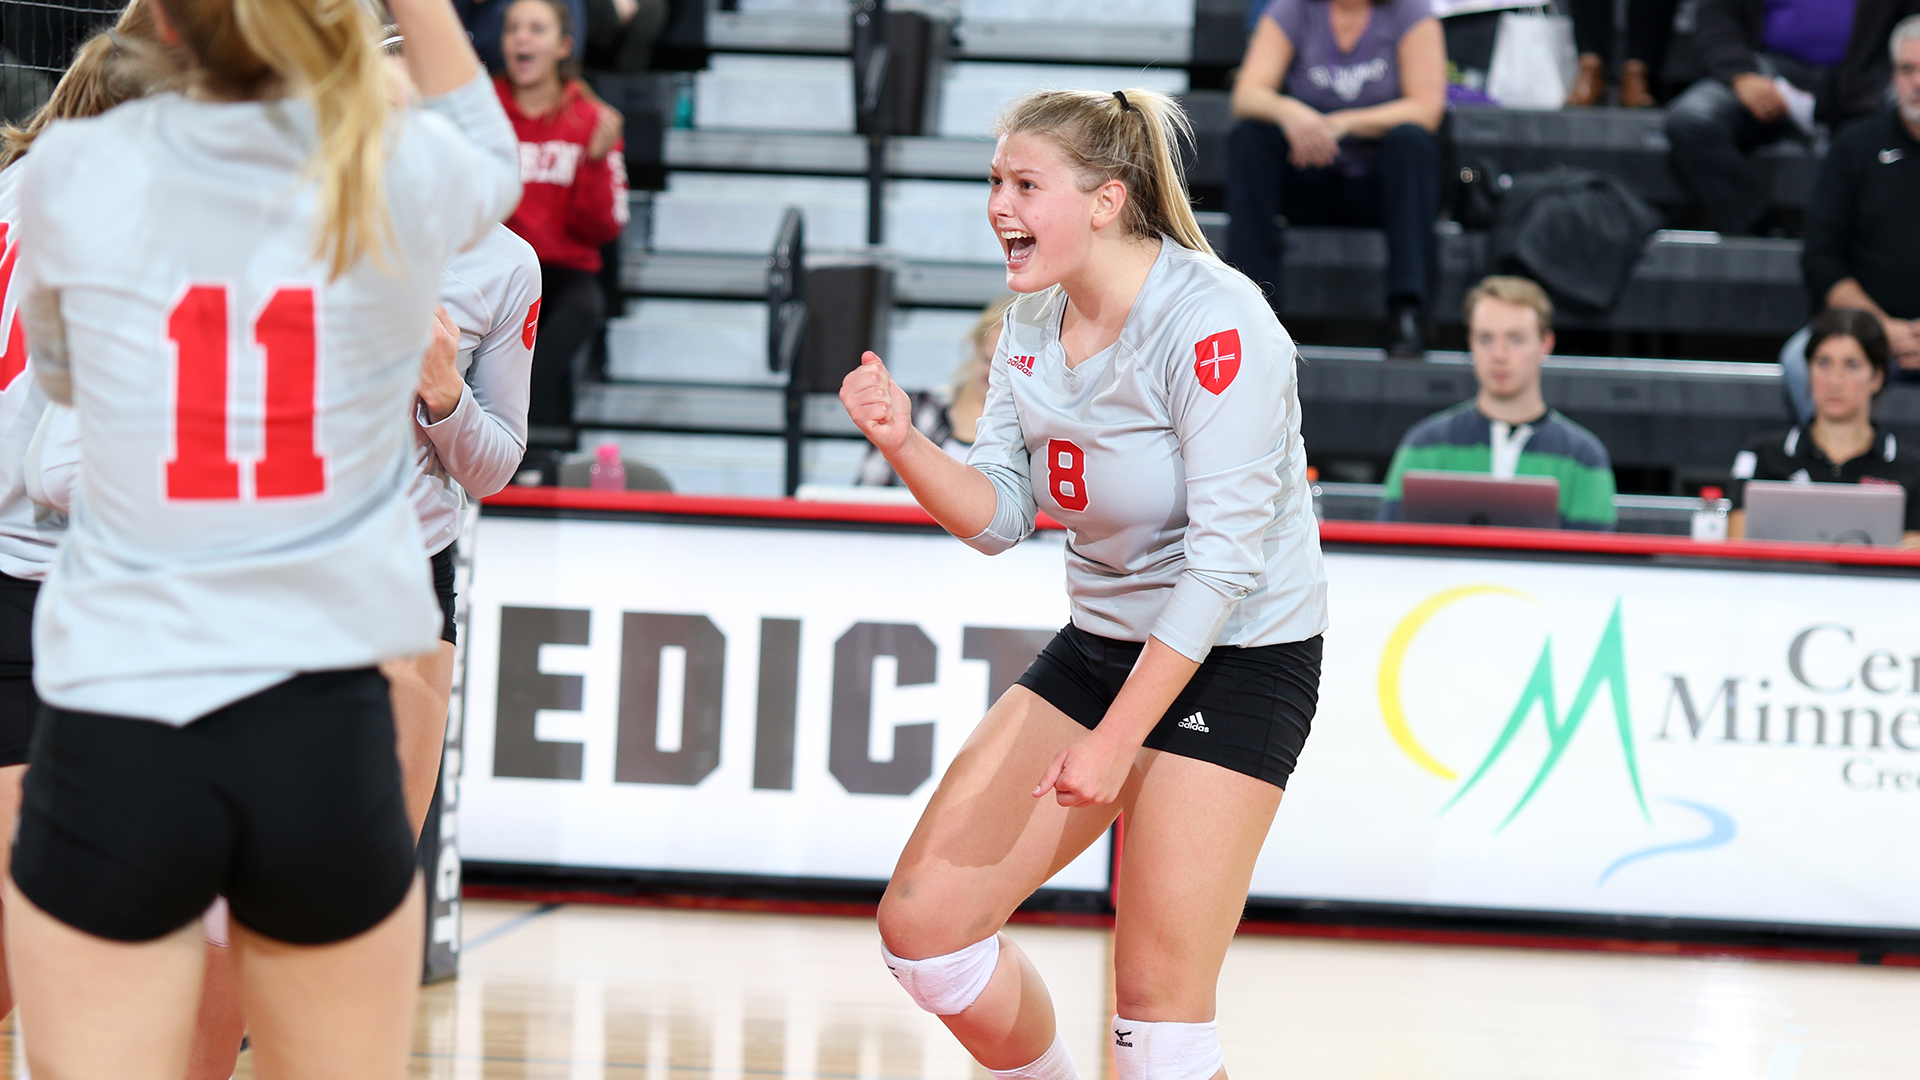 Katie Koch celebrates after scoring a point against St. Thomas